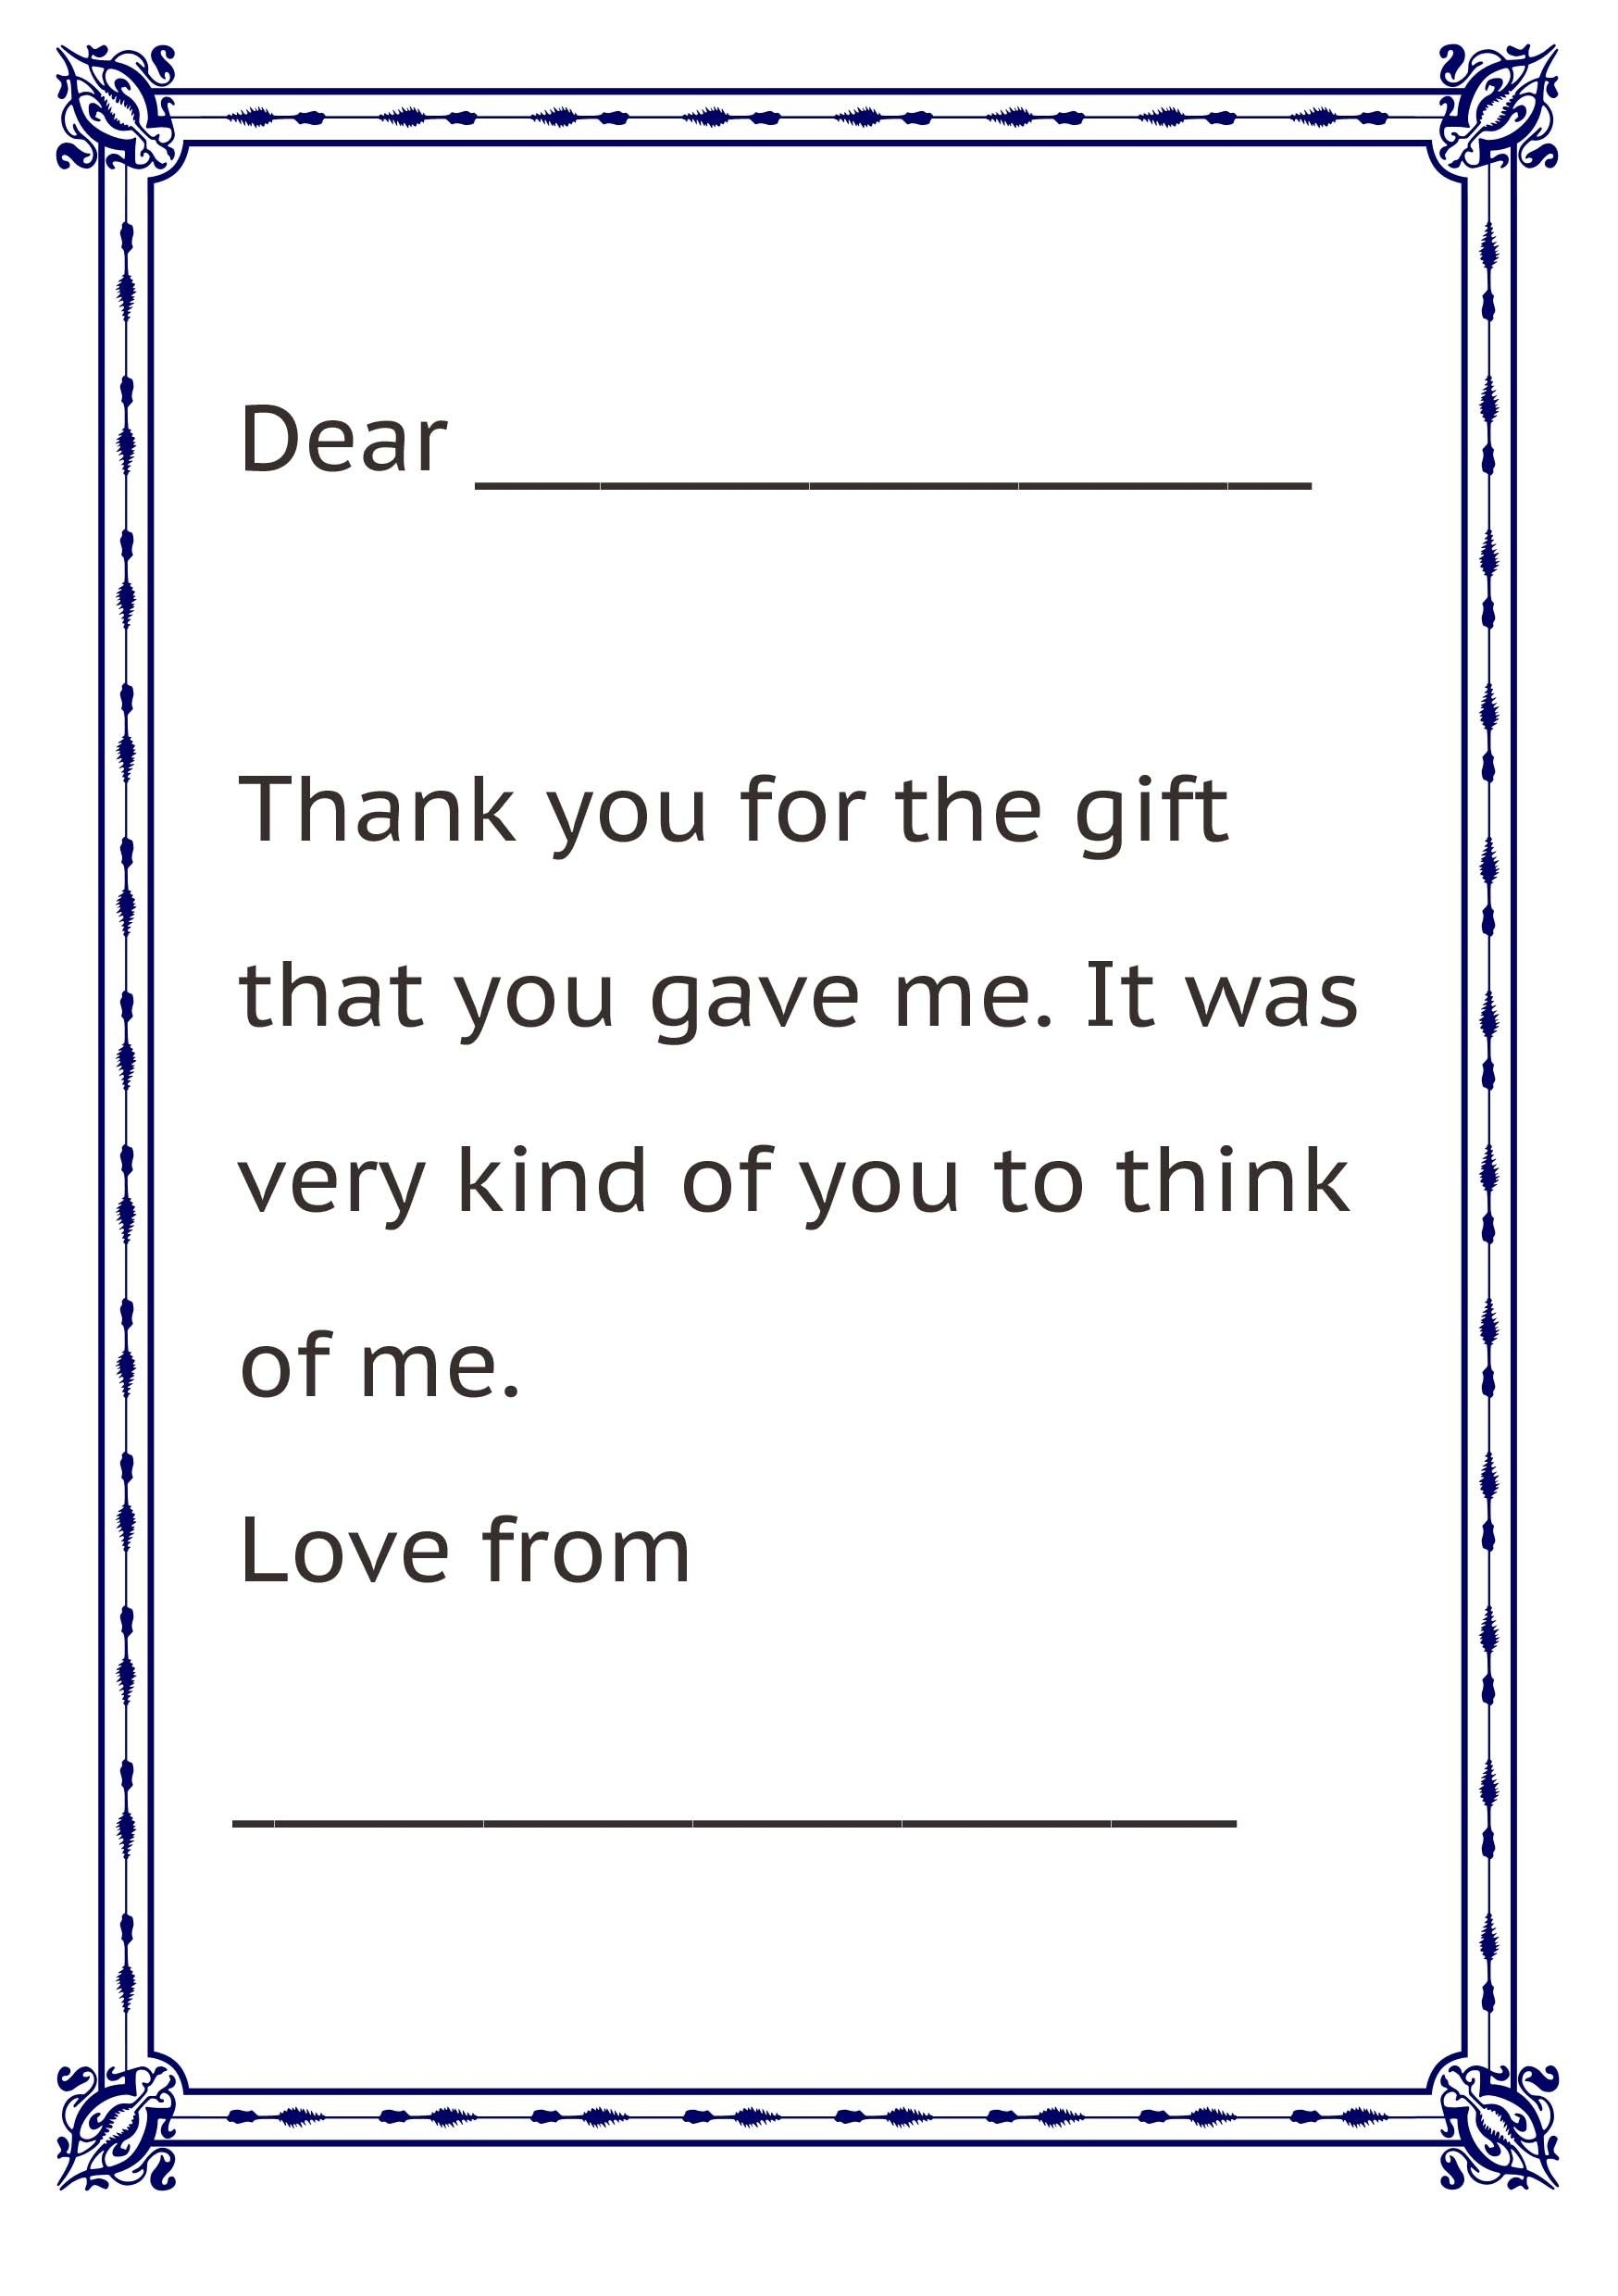 Thank You Letter Format For Kids | Letters pertaining to Thank You Letter Format For Kids 20931